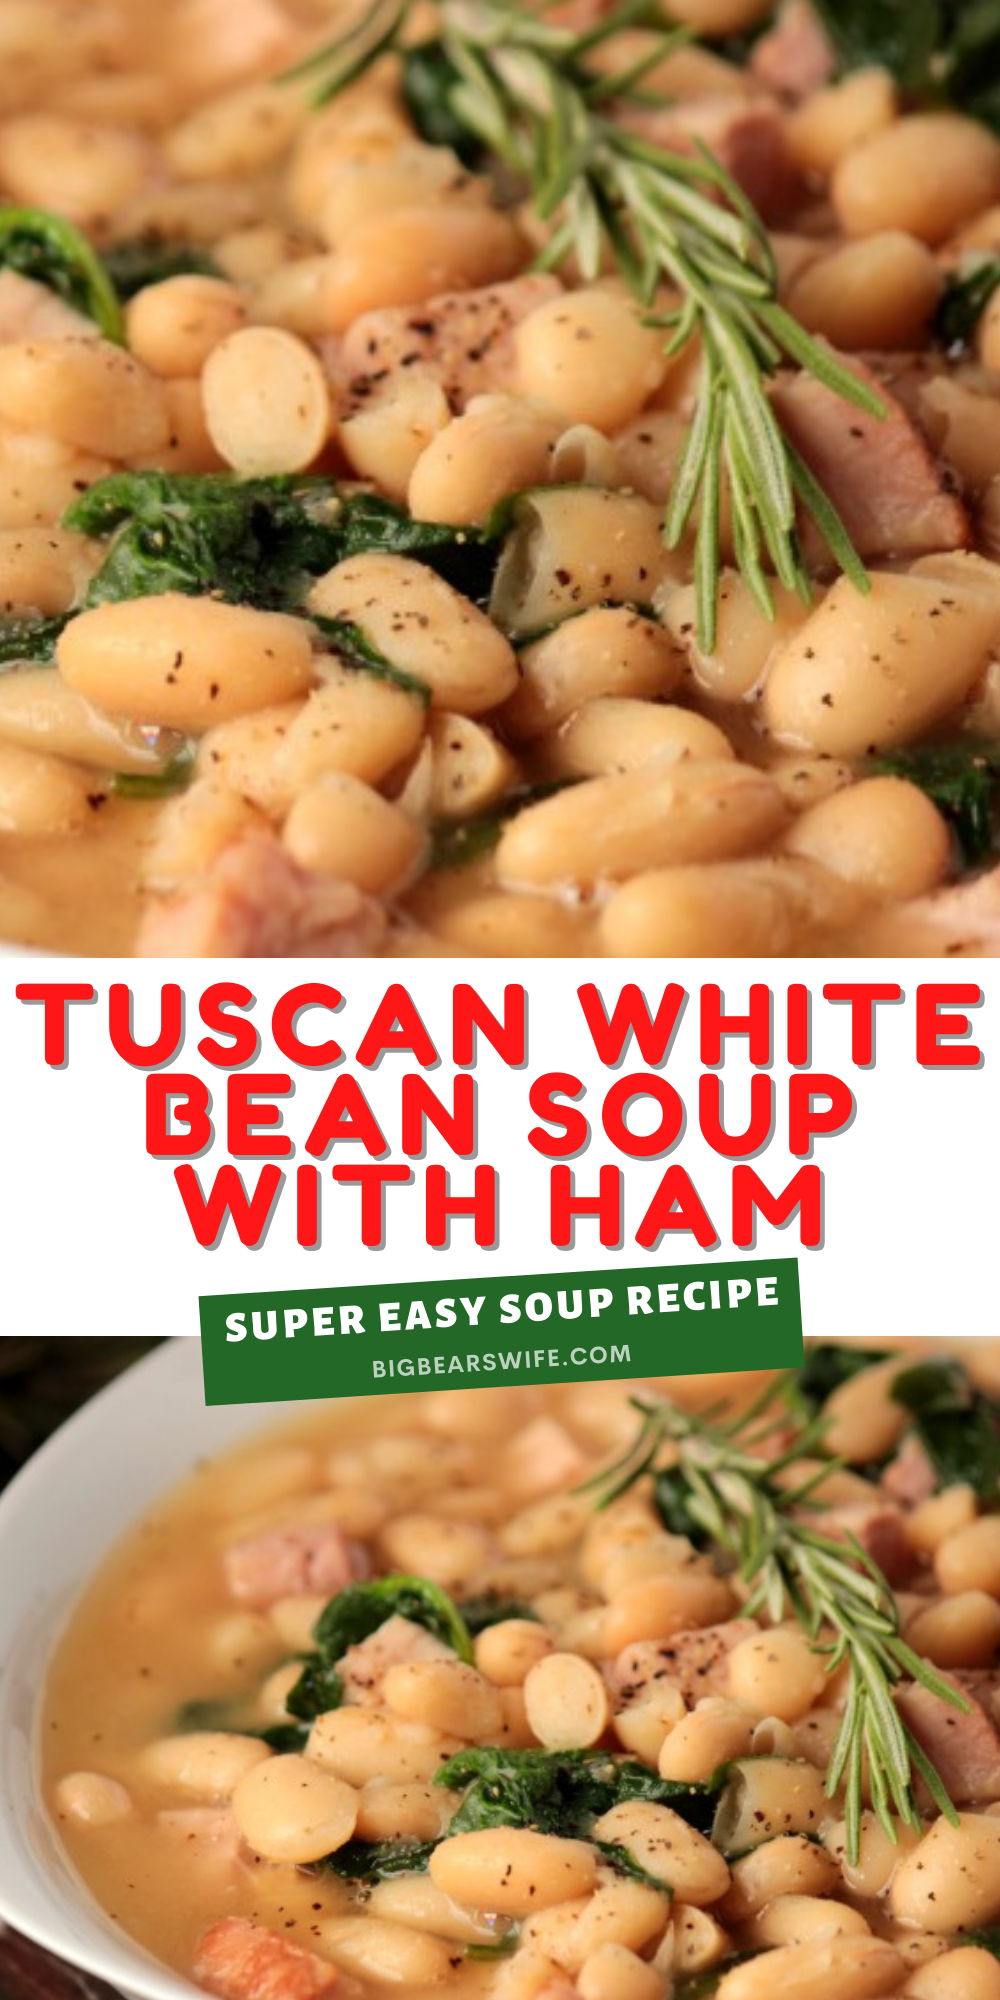 This Tuscan White Bean Soup with Ham is packed full of Cannellini white beans and ham! It's an easy soup that's ready in under 45 minutes.This would be great with leftover ham from Thanksgiving or leftover turkey!  via @bigbearswife